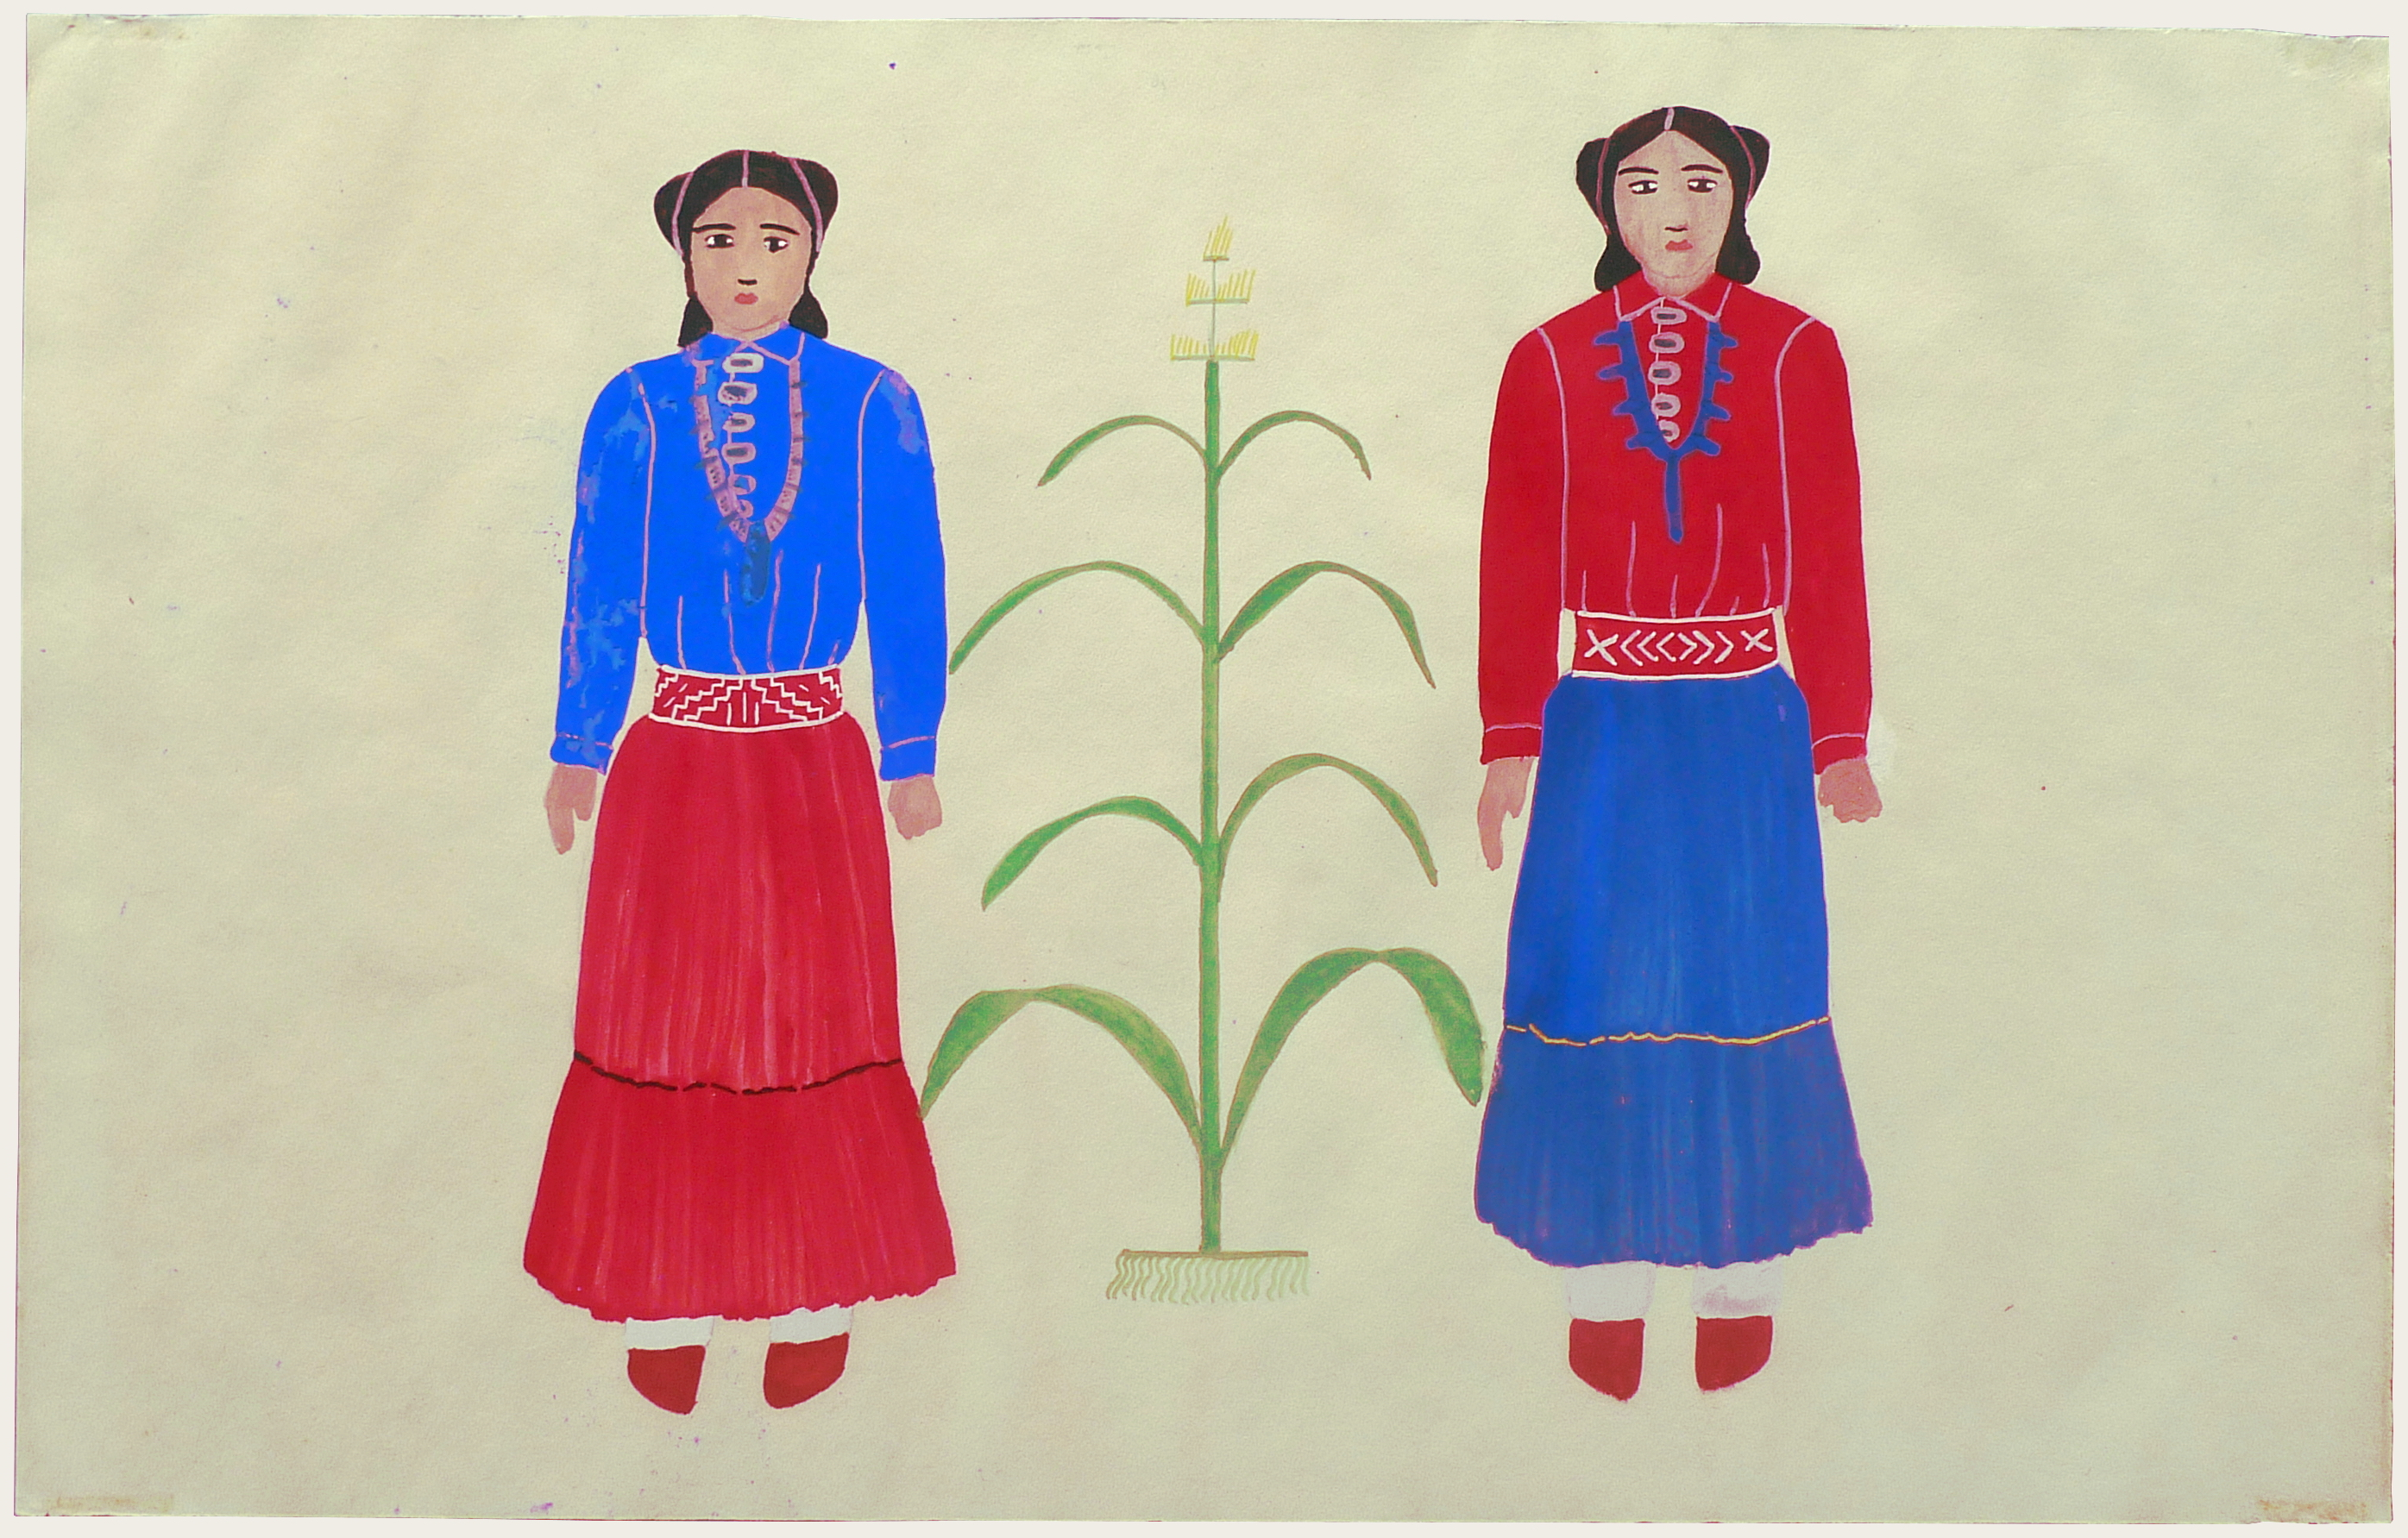 Art Exhibition Poster fragment with painting of two figures facing the viewer, flanking a corn stalk at center. The figure at left is clothed in a blue shirt and red skirt, the figure at right is clothed in the inverse colors.